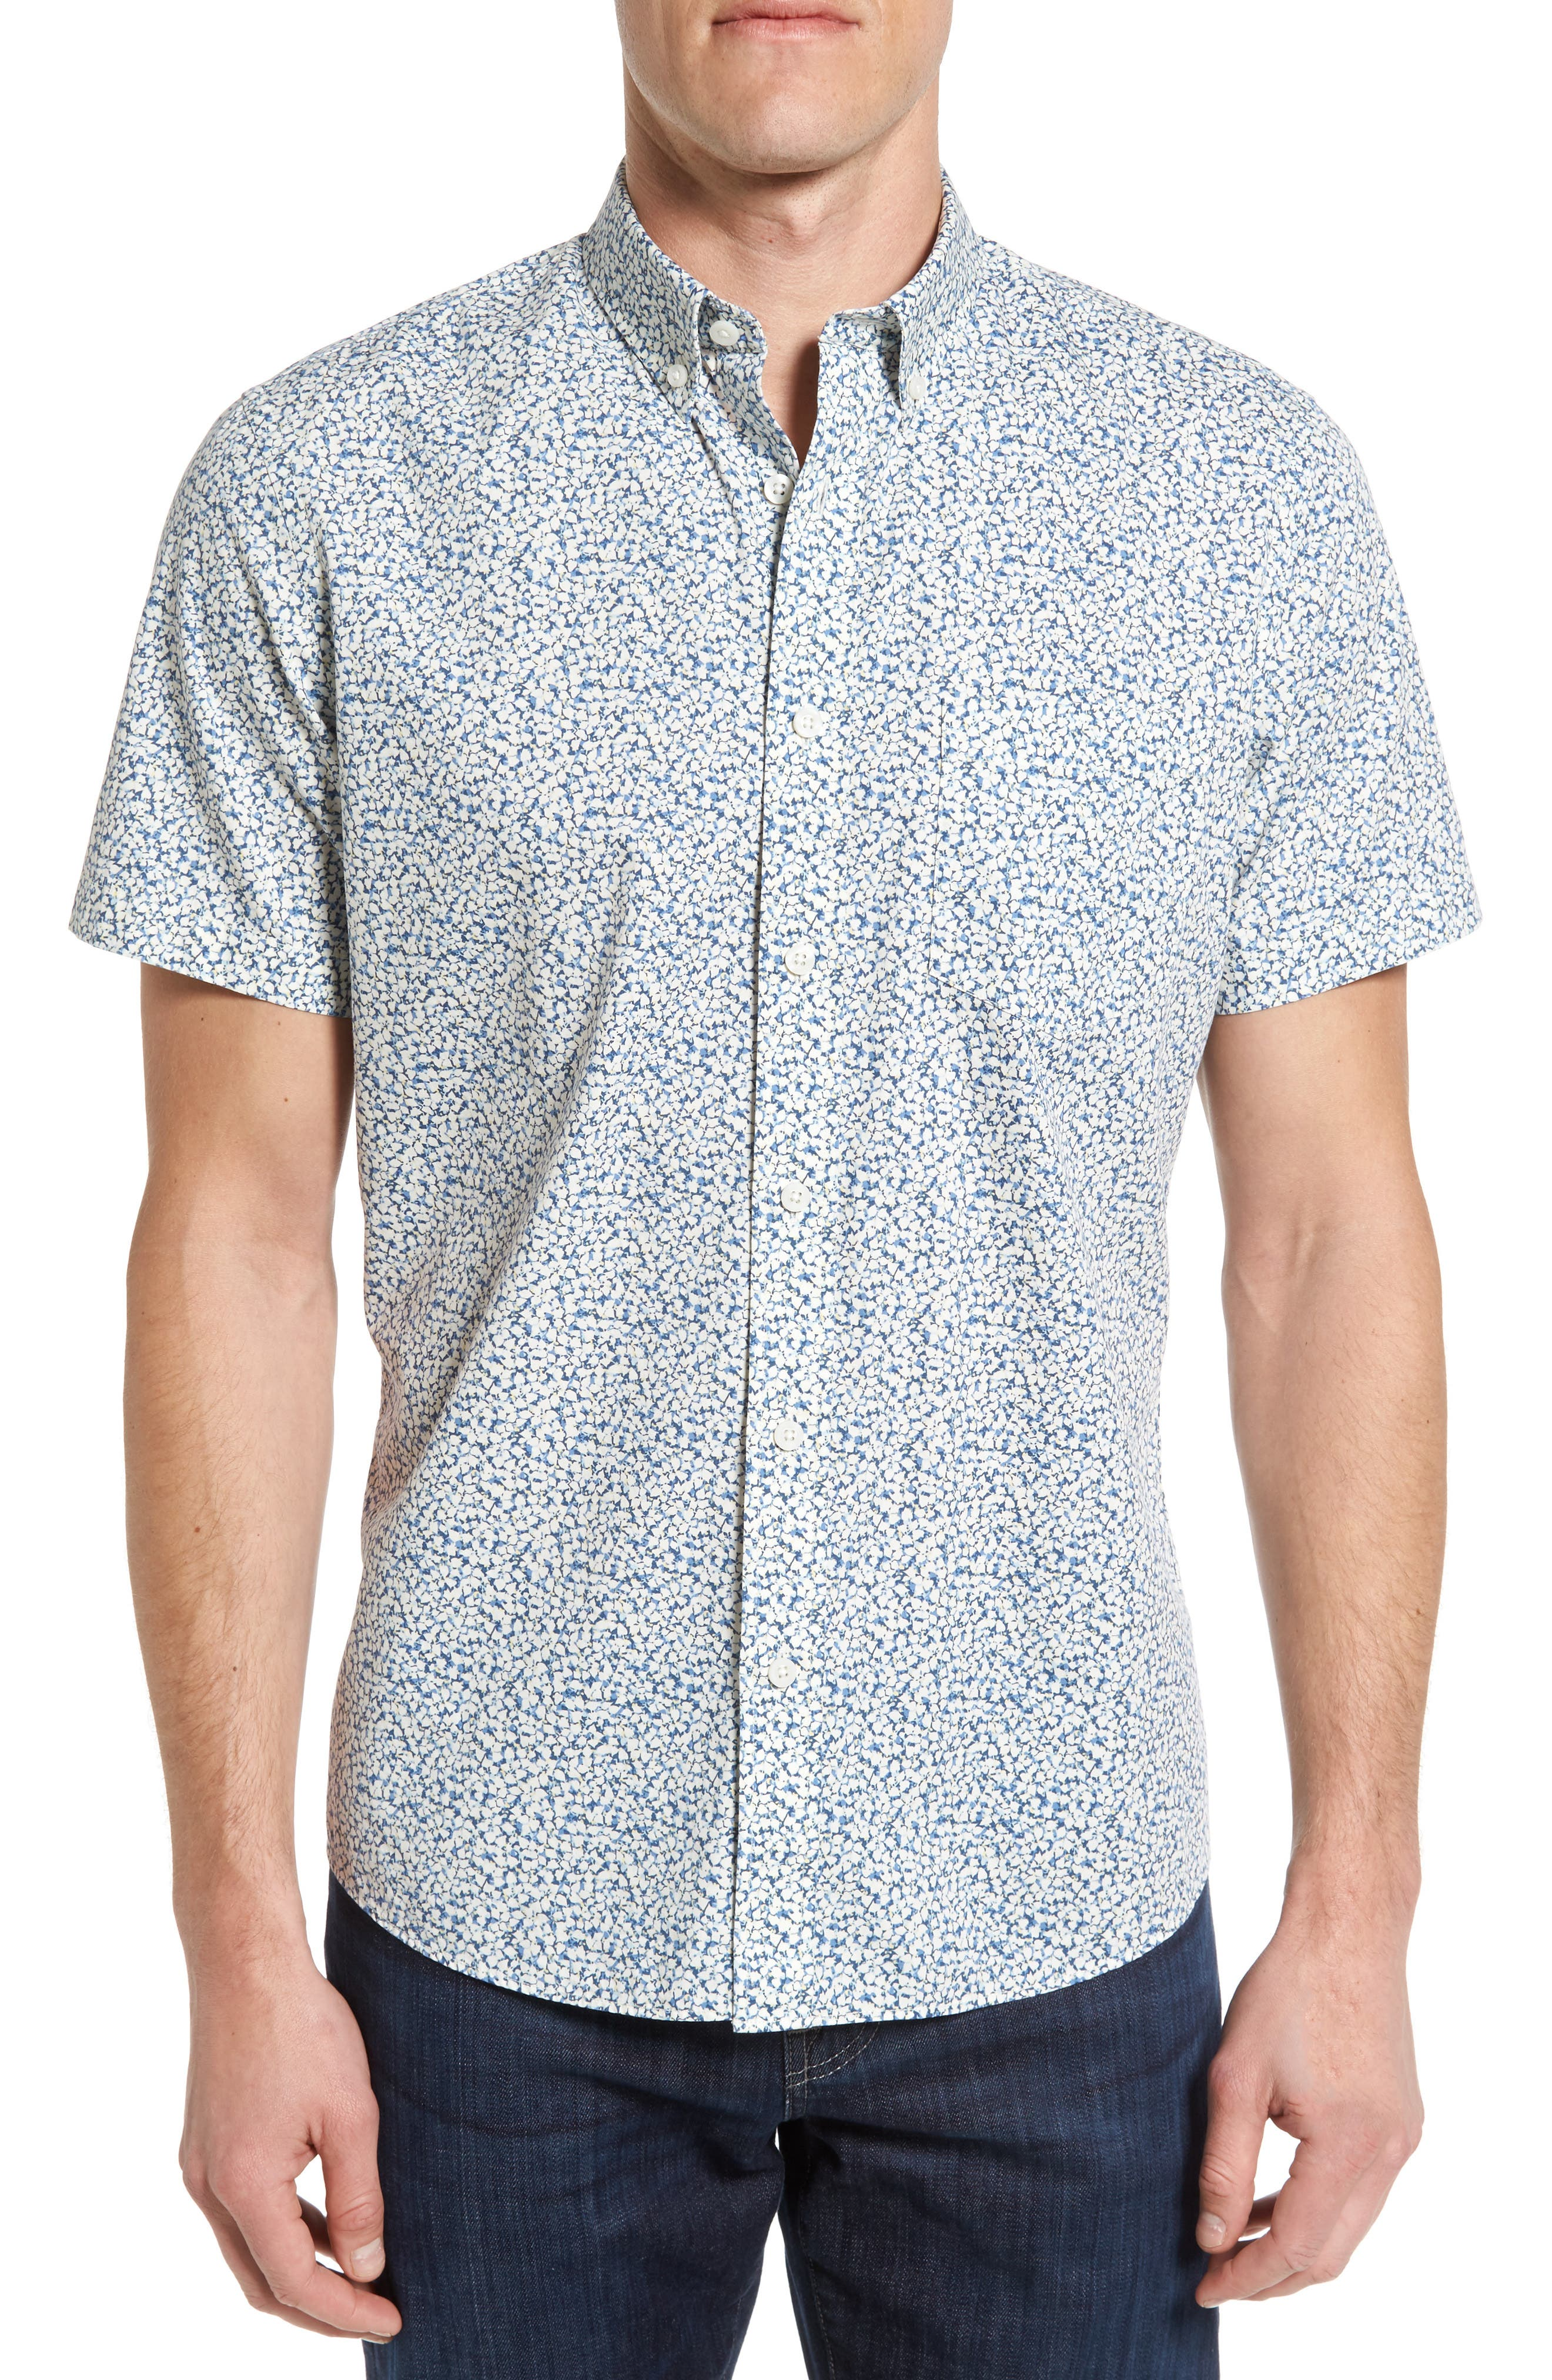 Nordstrom Men's Shop Slim Fit Floral Print Sport Shirt